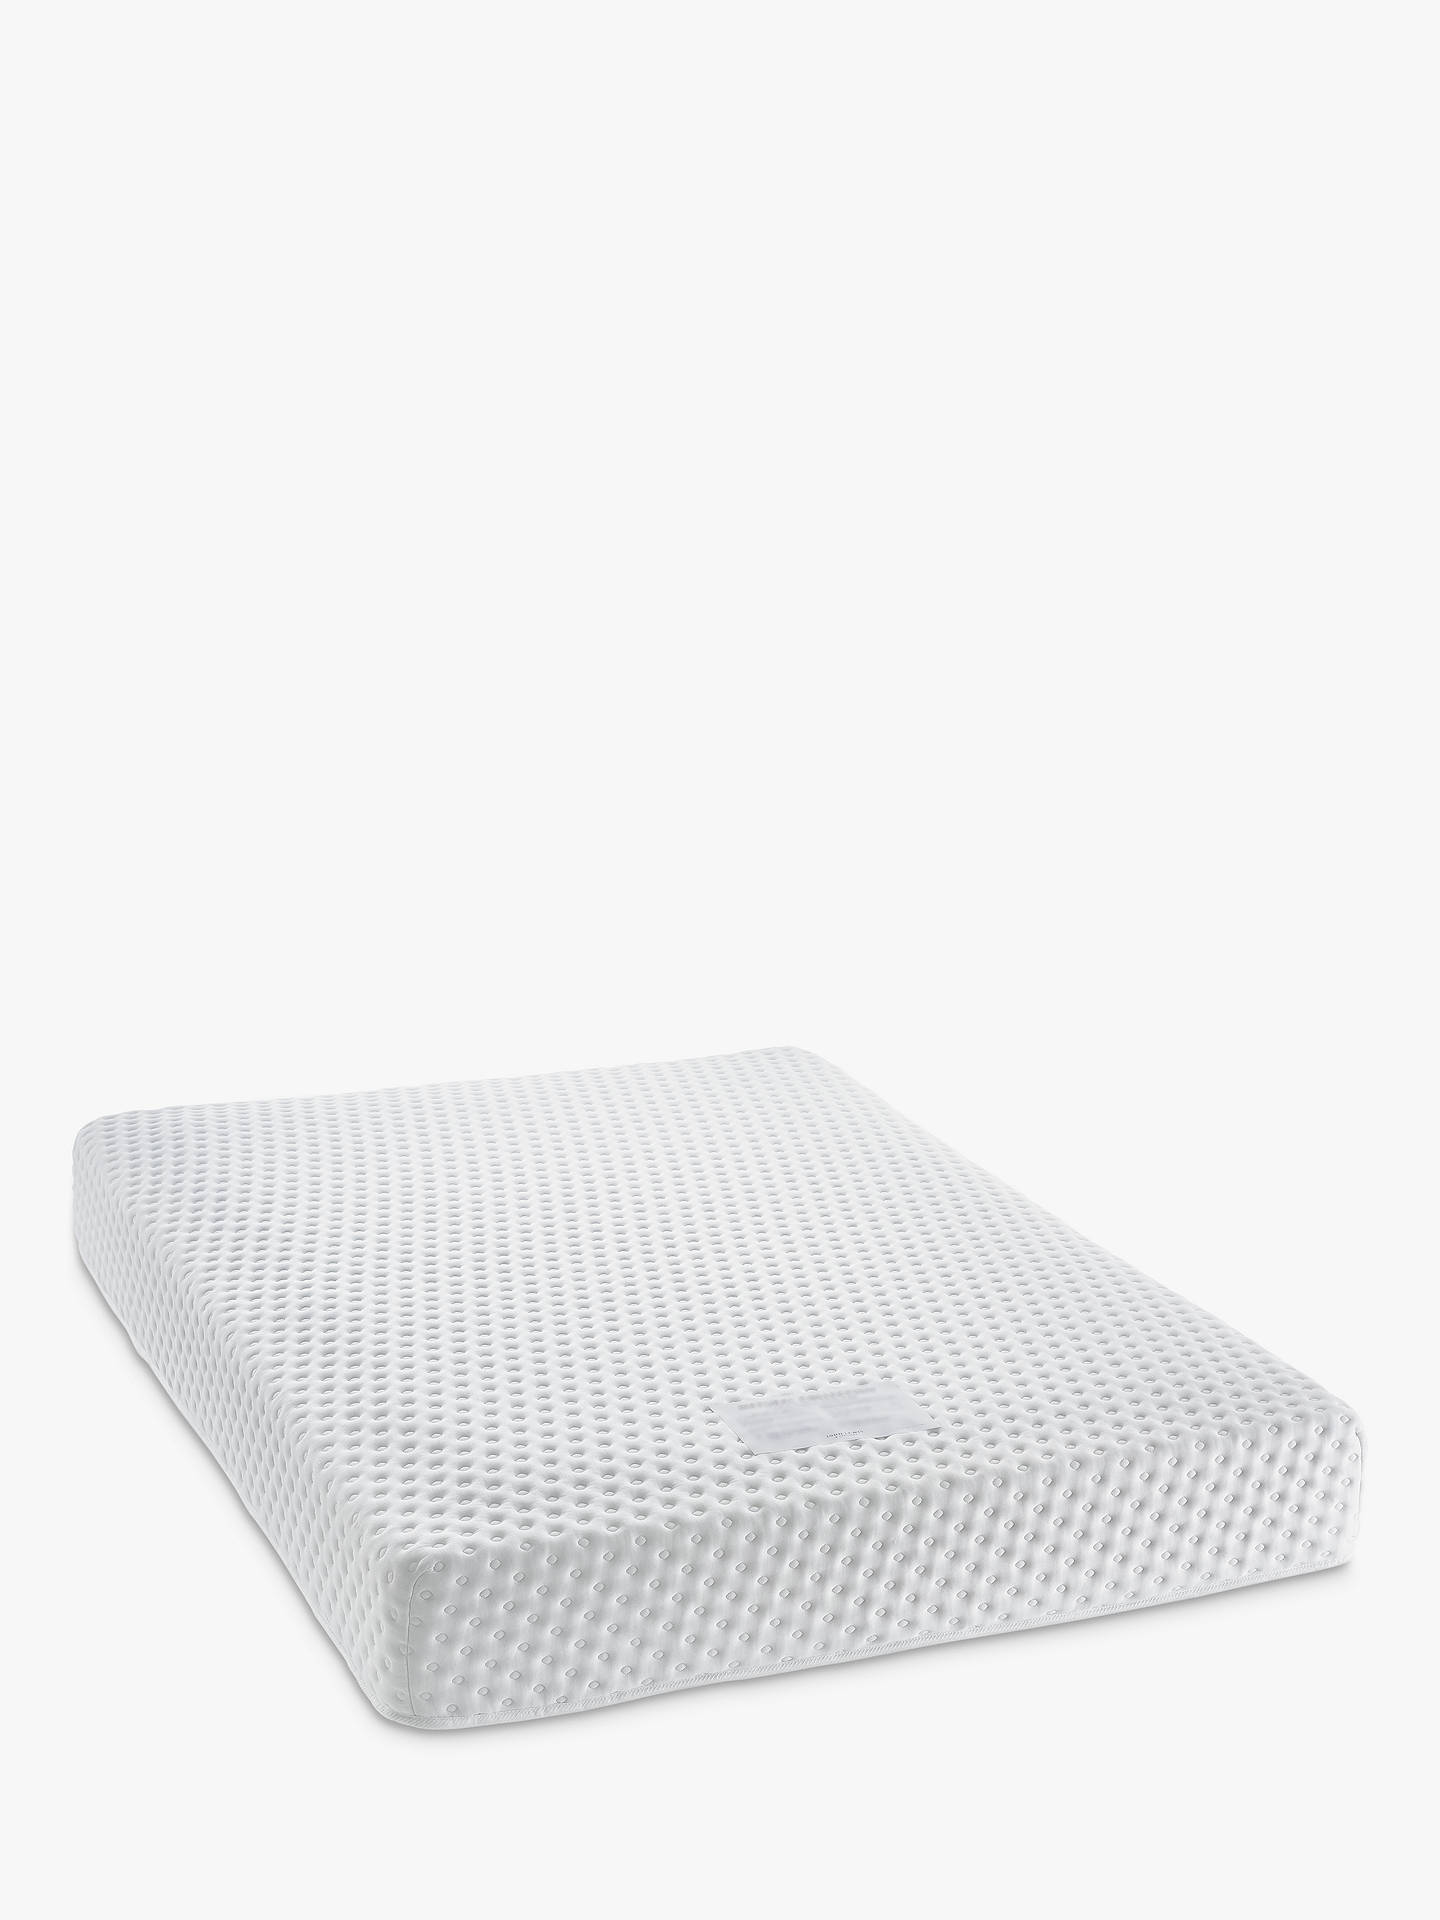 Buy John Lewis & Partners Climate Collection Copper 1200, King Size, Medium Tension Pocket Spring Mattress Online at johnlewis.com